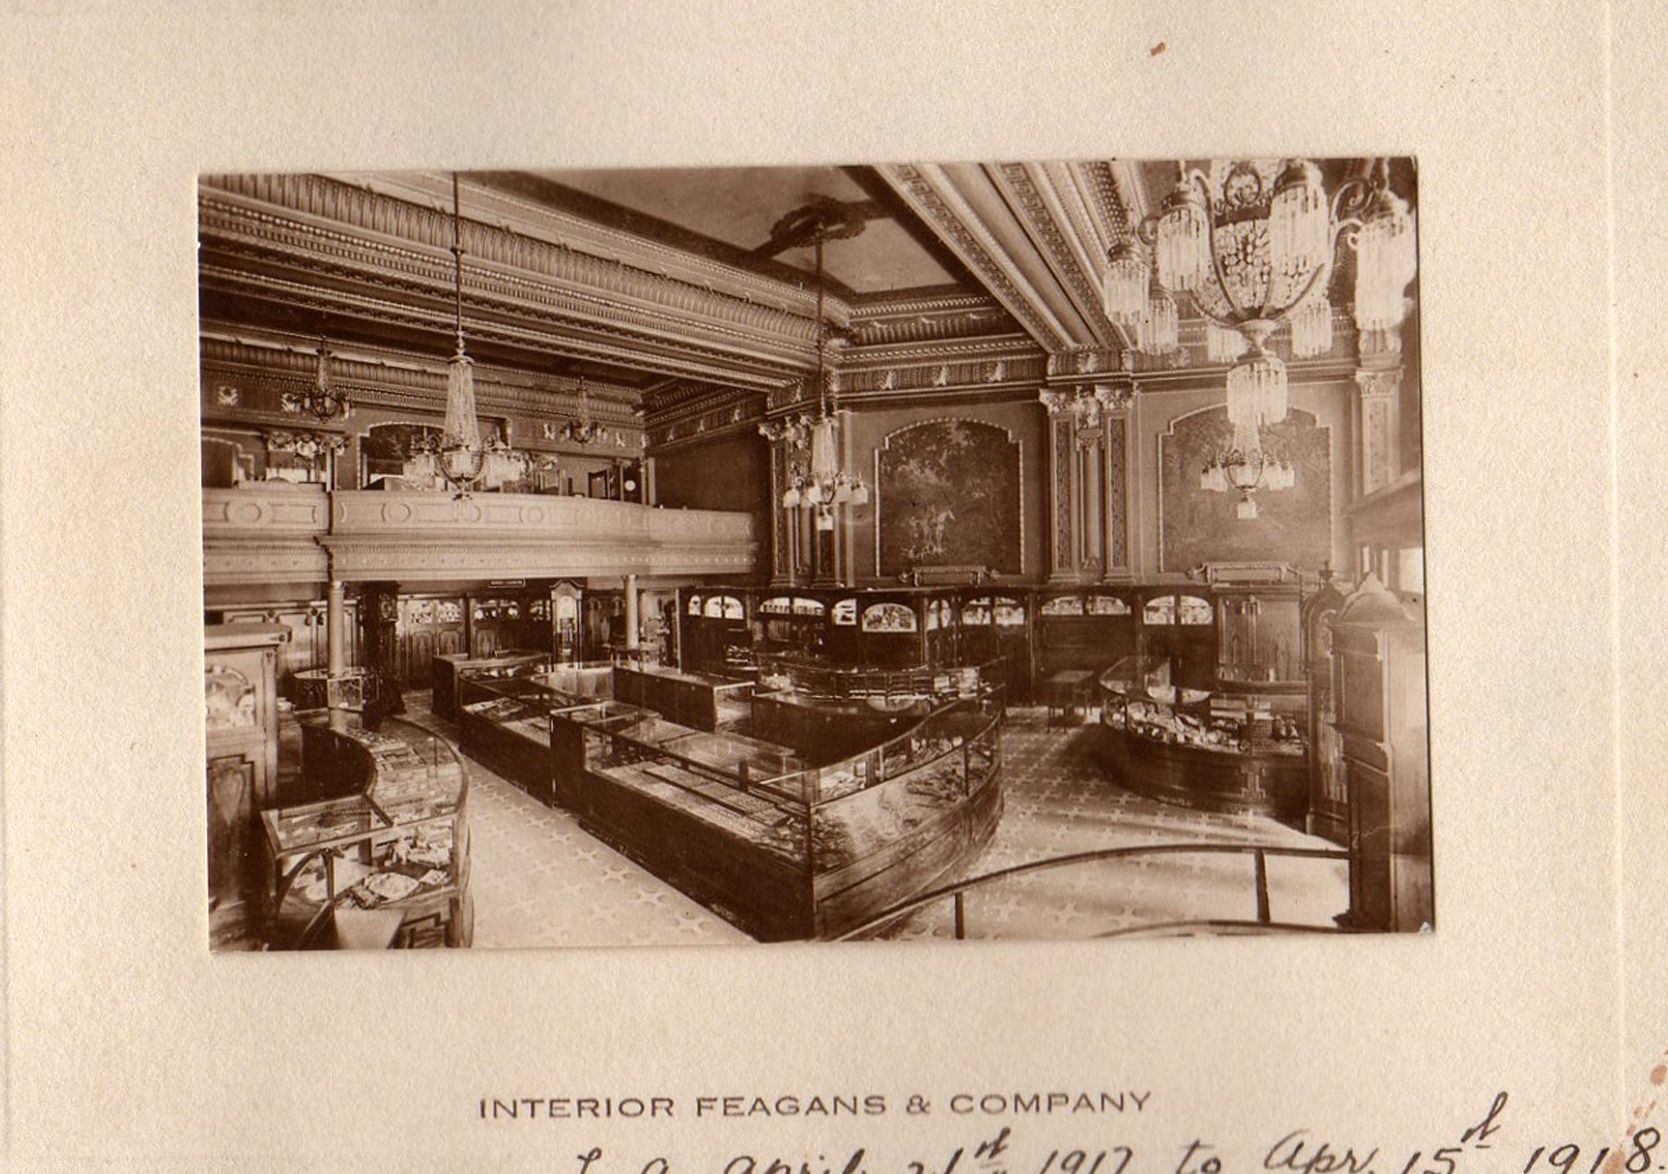 Rare Photo Of Feagans U0026 Company, A Jewelry Store That Once Occupied One Of  The